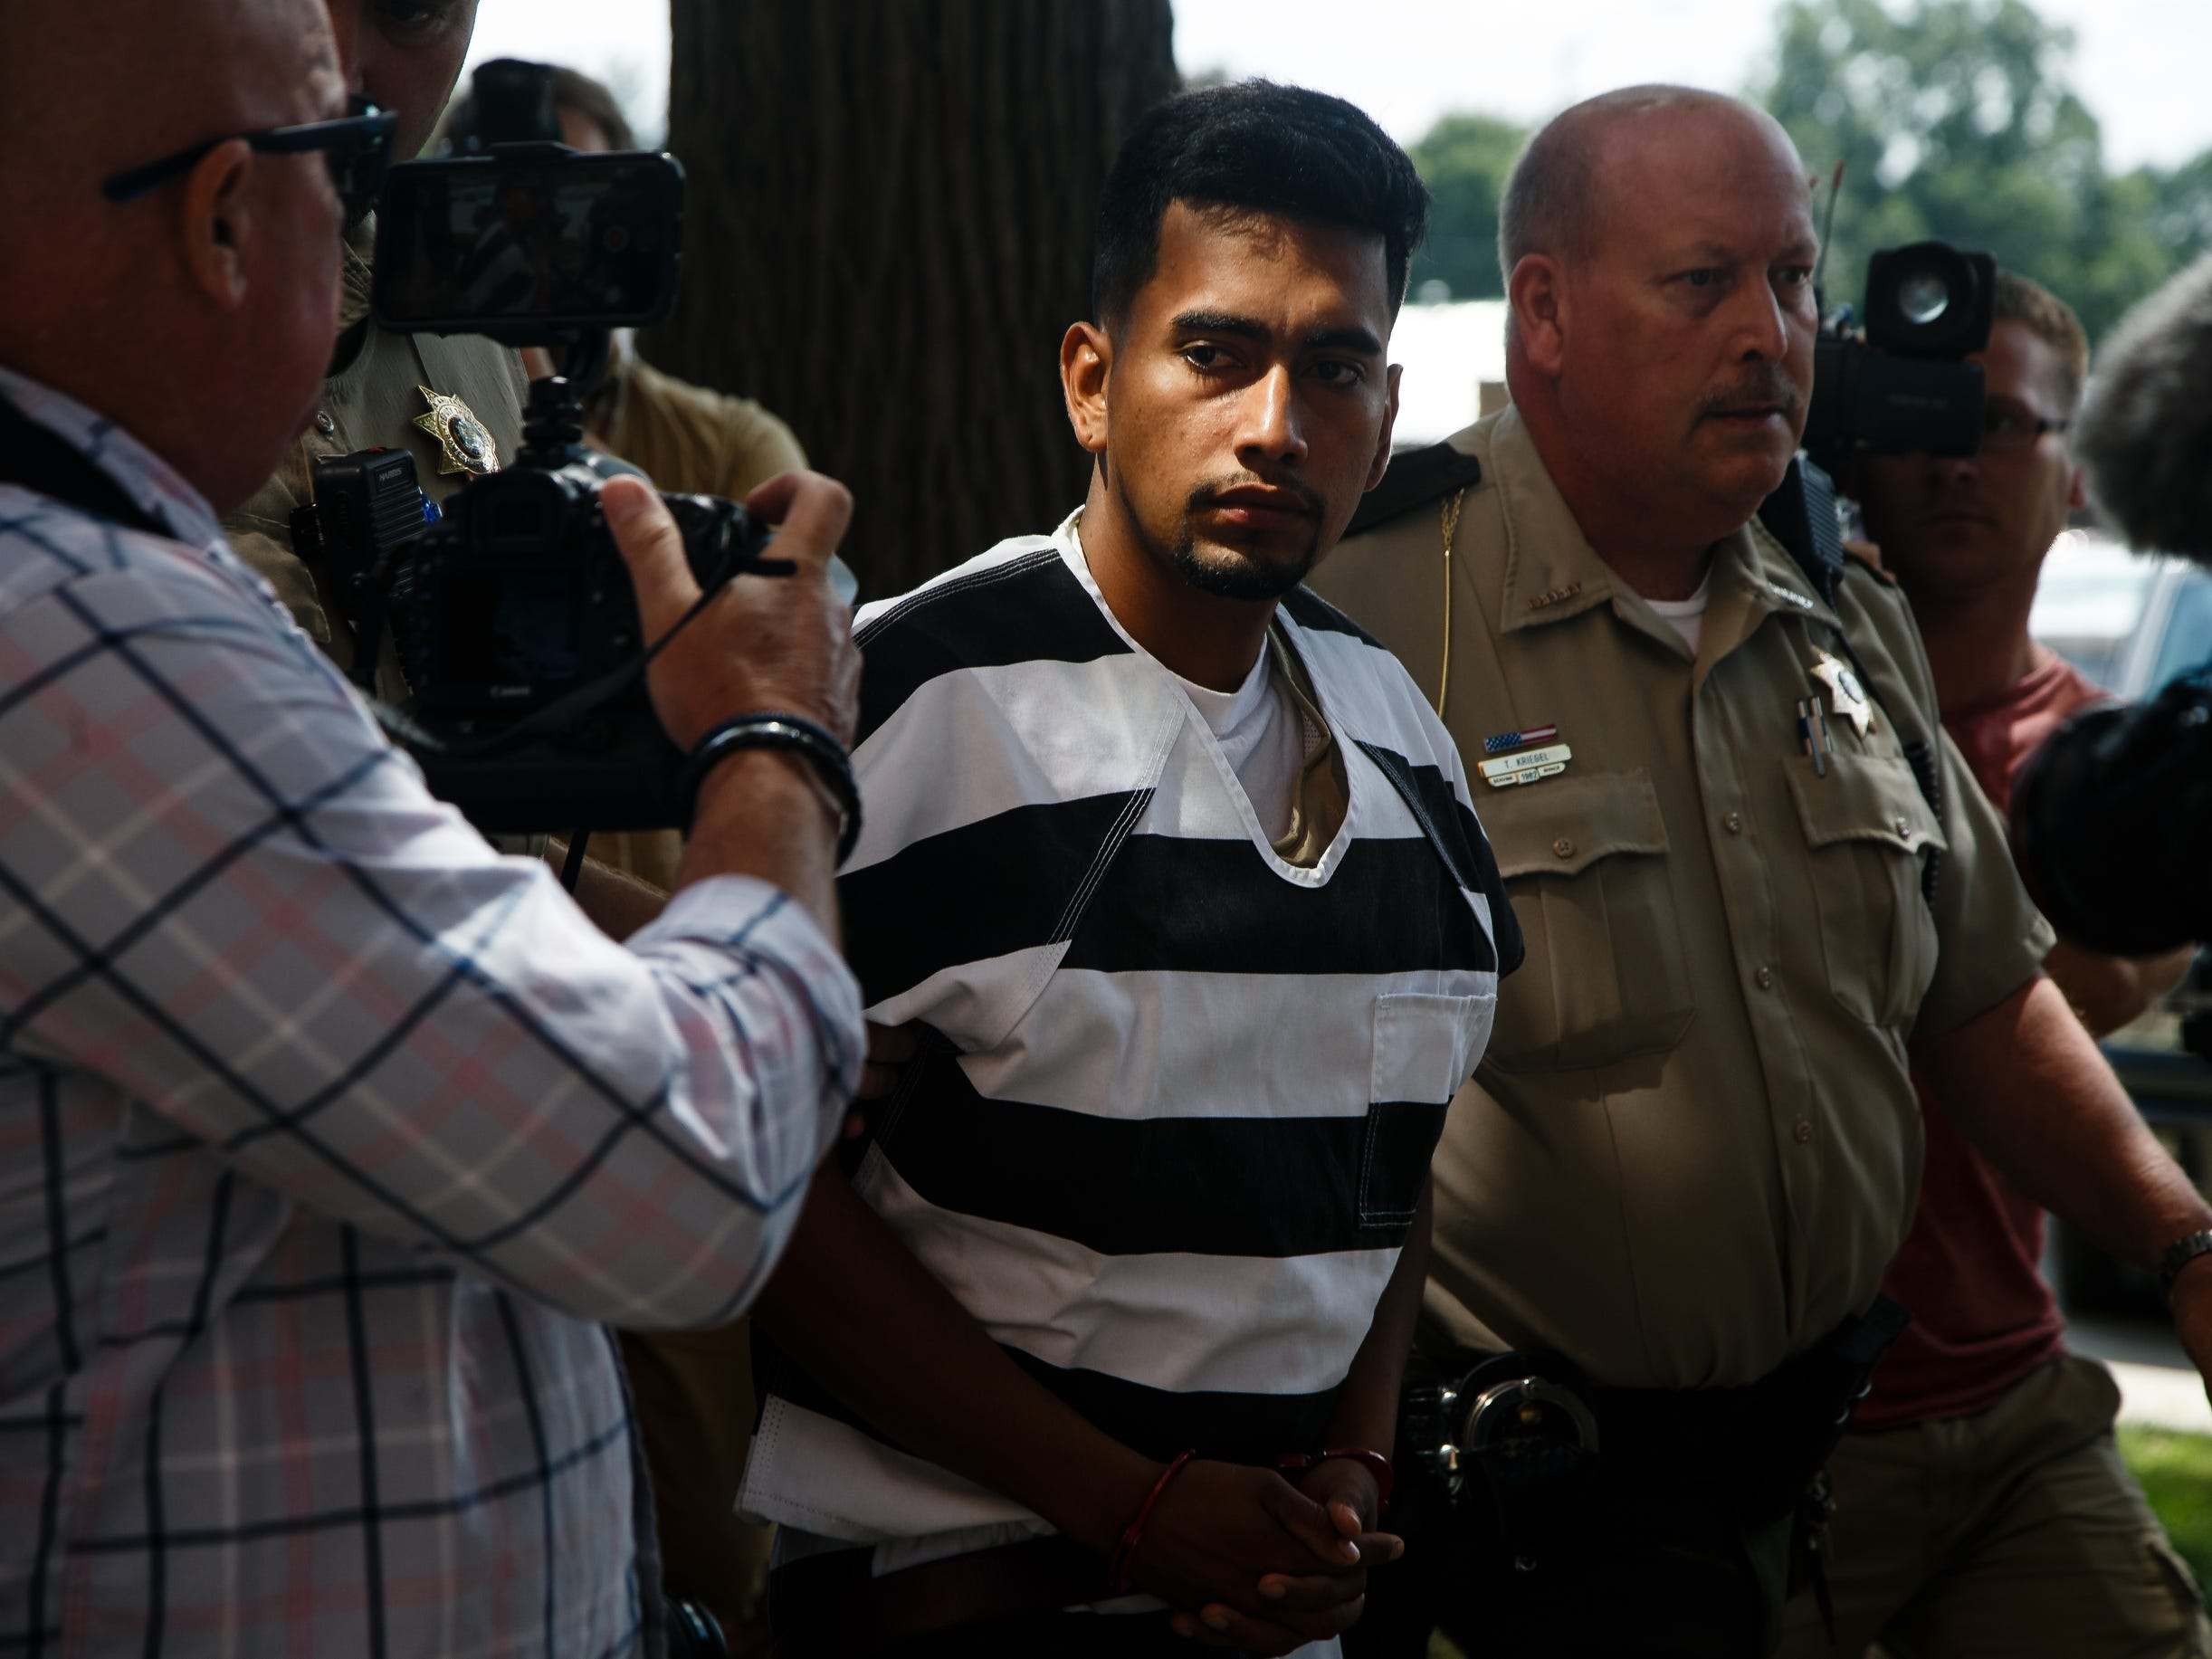 Is he here legally? The facts surrounding the immigration status of Mollie Tibbetts' accused killer